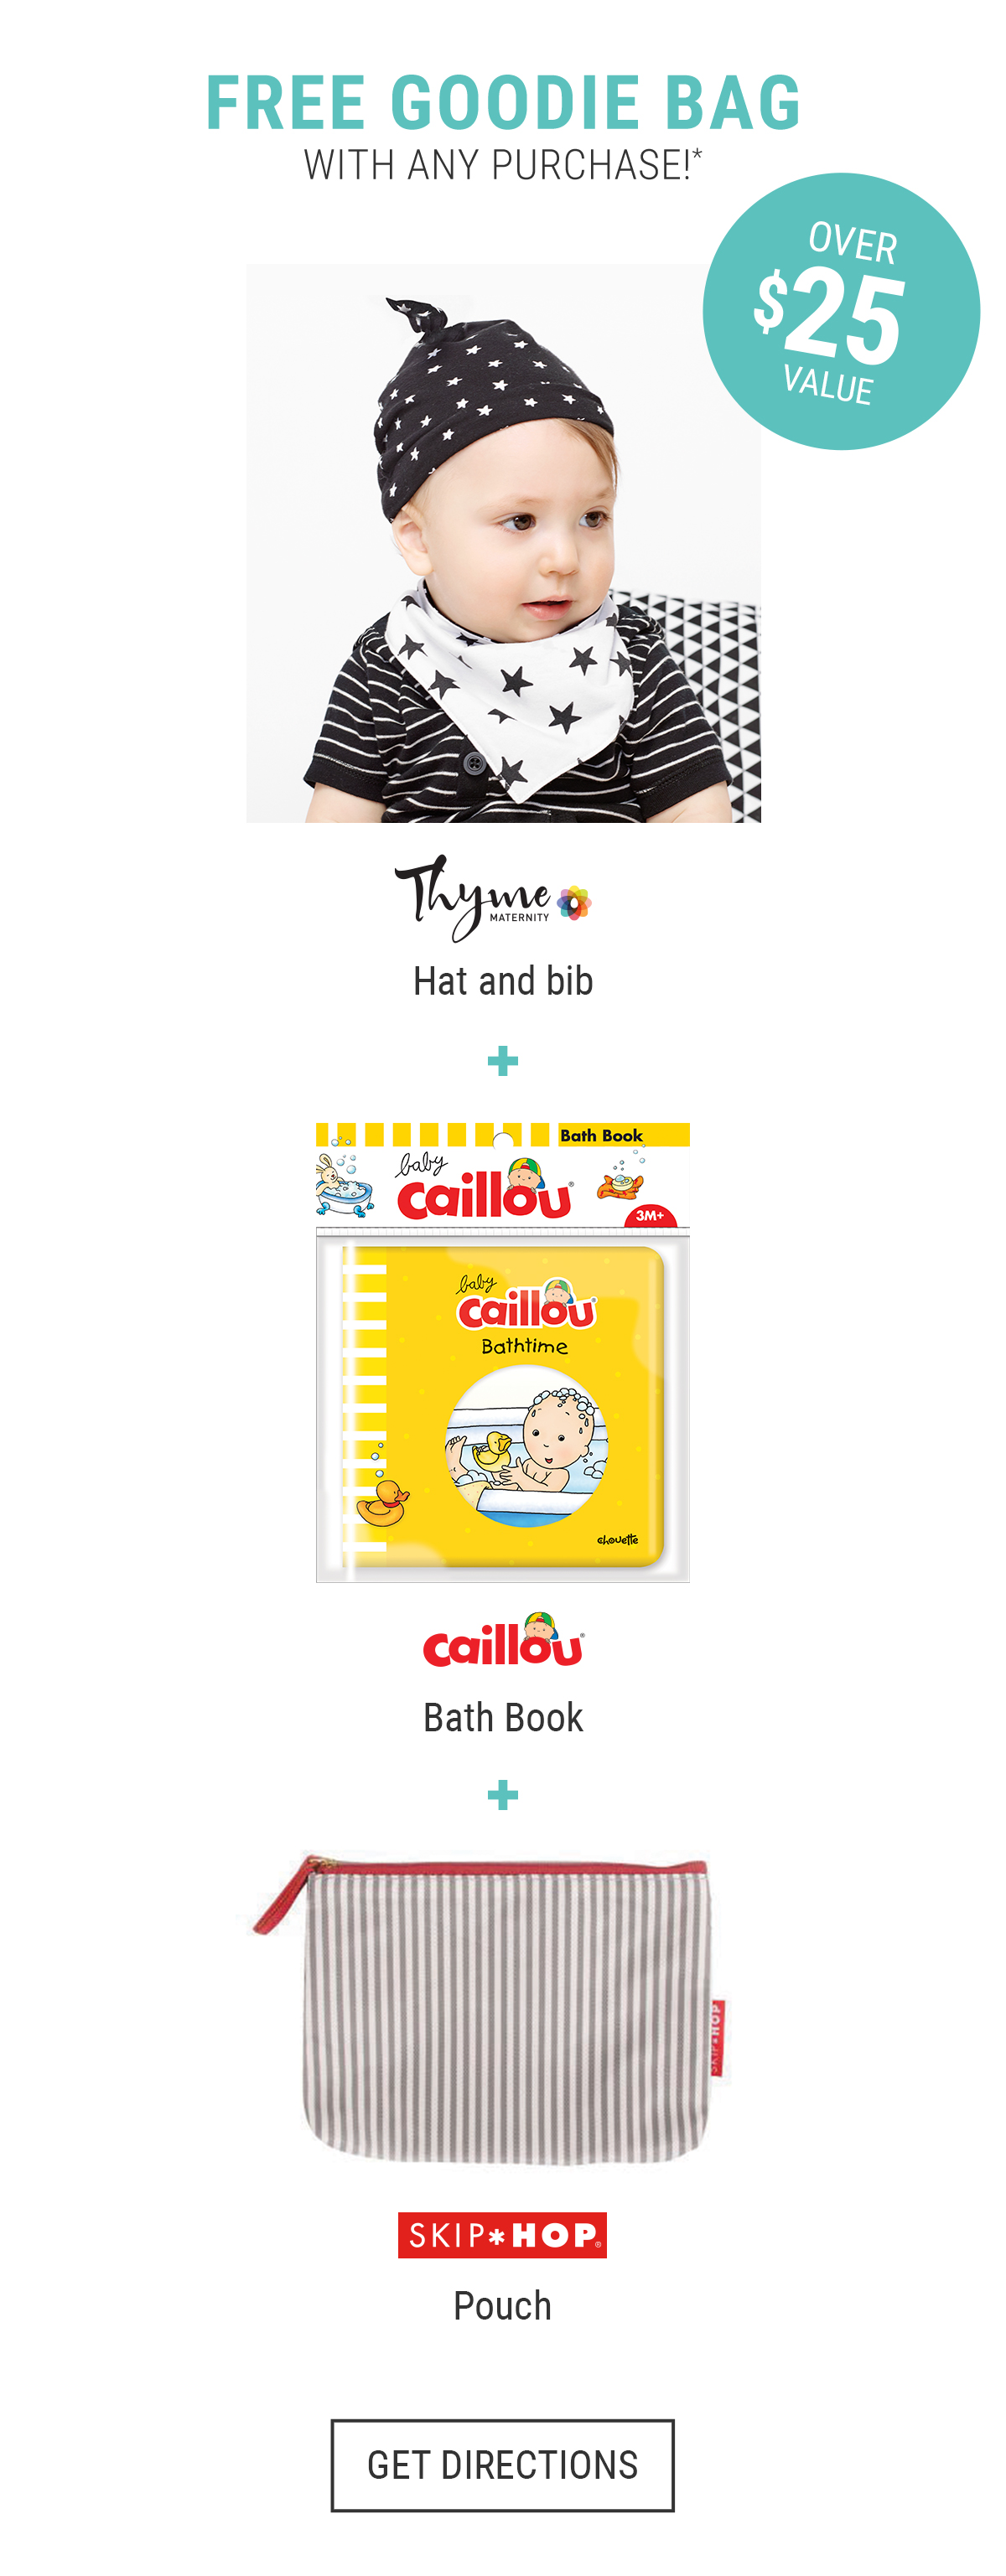 We're offering you a FREE GOODIE BAG with any purchase* Hat and bib Caillou Book Skip*Hop Pouch Over $25 value